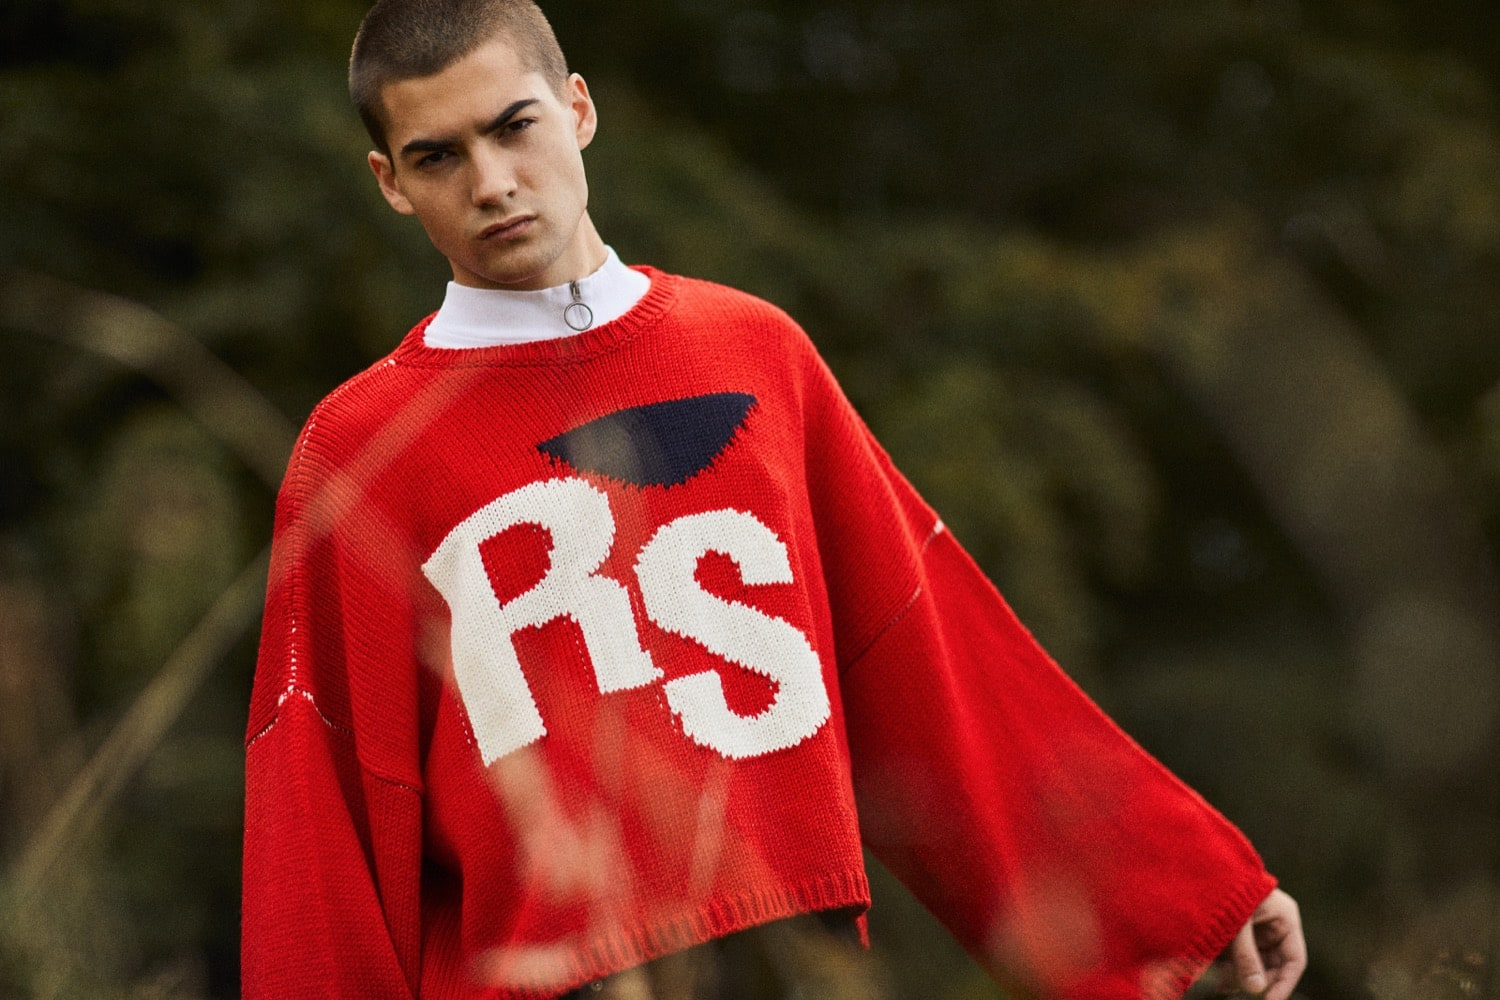 END. AW19 Required Item: Graphic Knitwear - model wears Raf Simons for END.